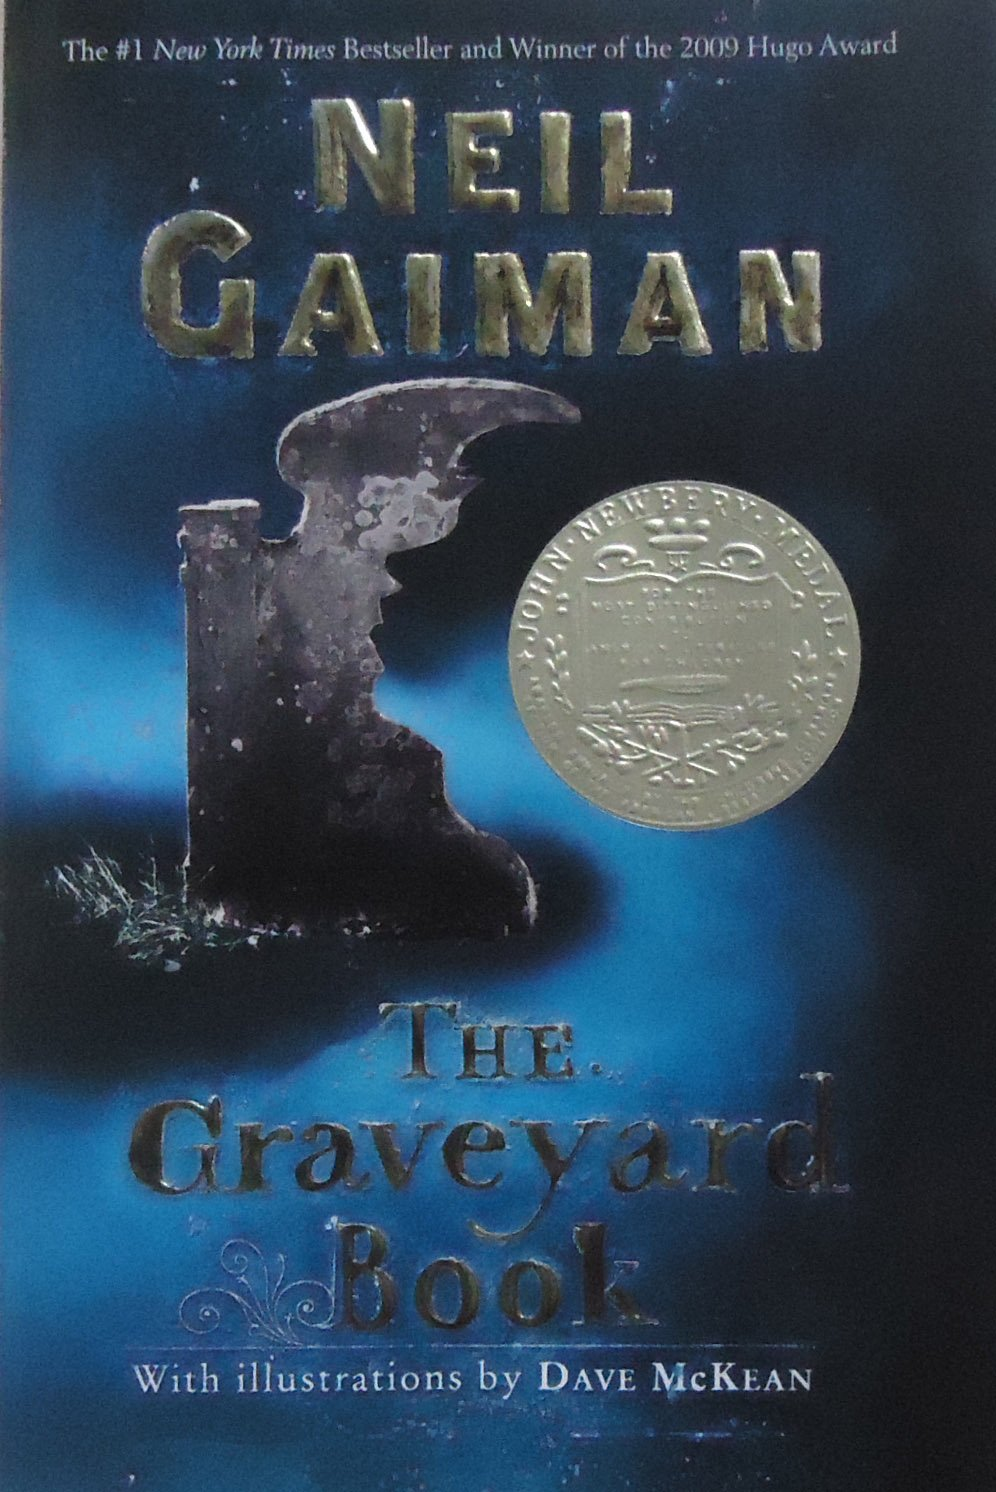 The Graveyard Book  written by Neil Gaiman, illustrations by Dave McKean